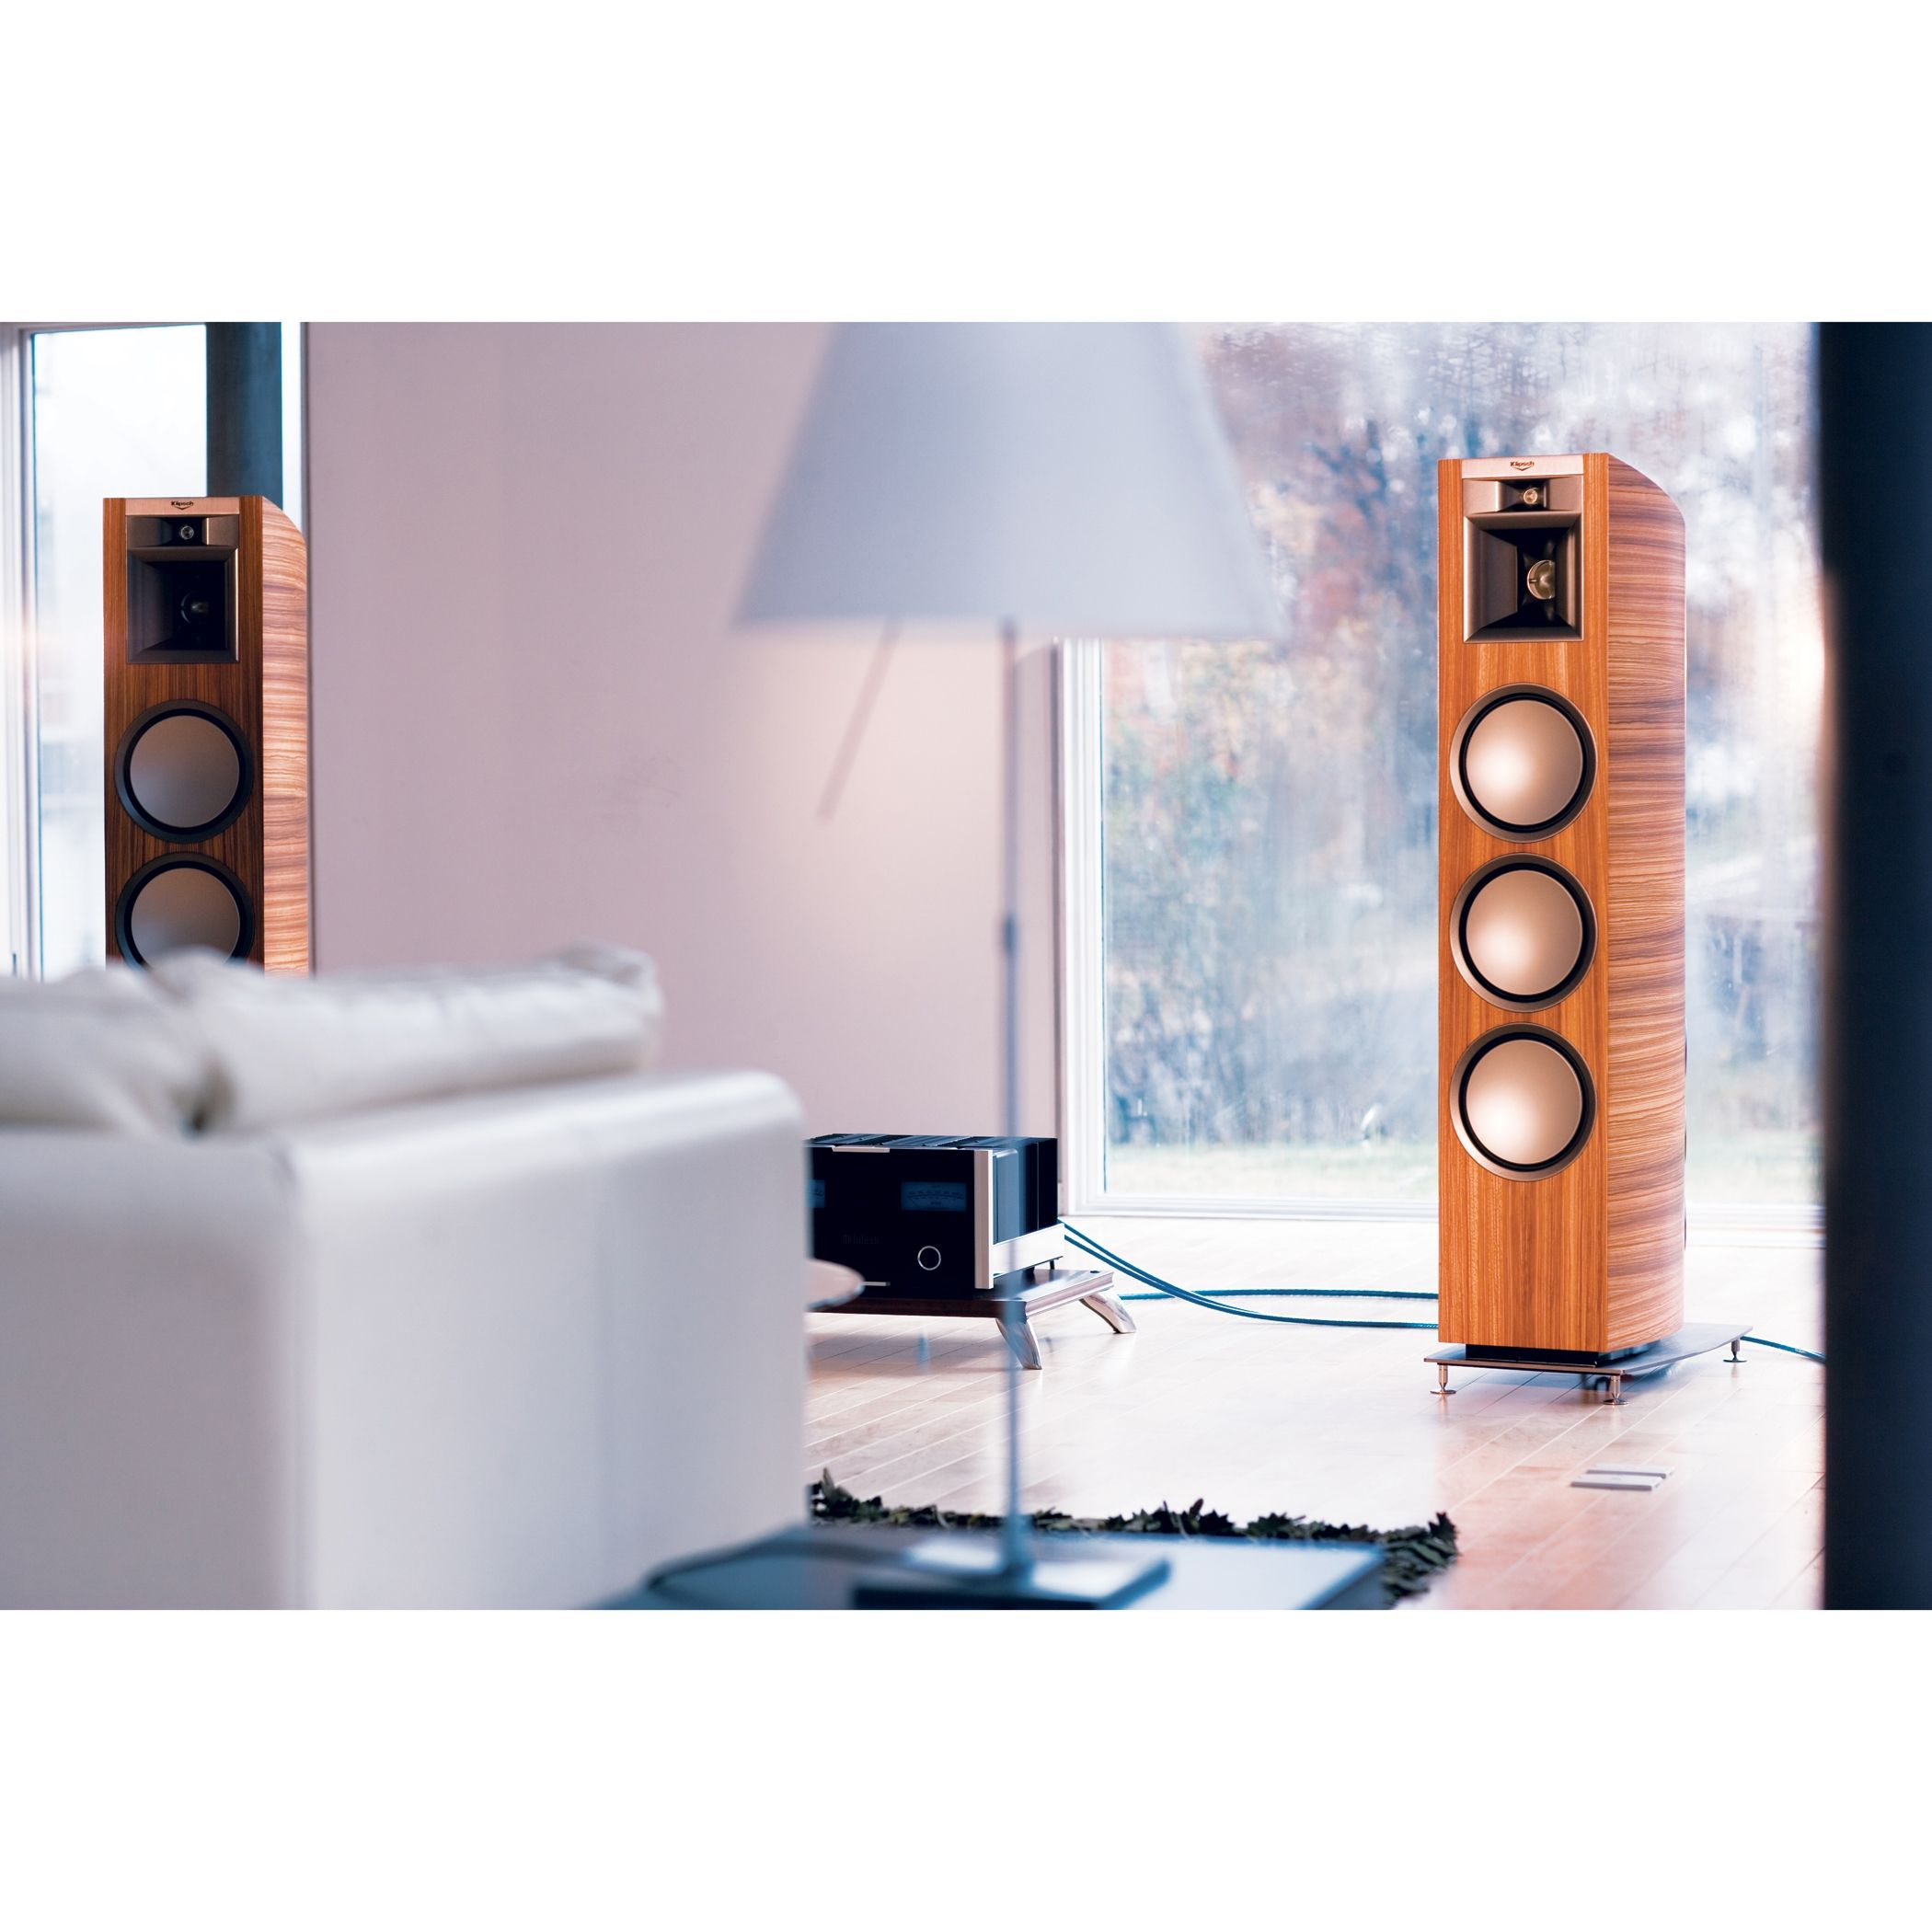 Our flagship Palladium speakers offer the latest in cutting-edge audio technology in a sleek package, providing you with unprecedented audio fidelity, low distortion and an aesthetically pleasing luxury package.